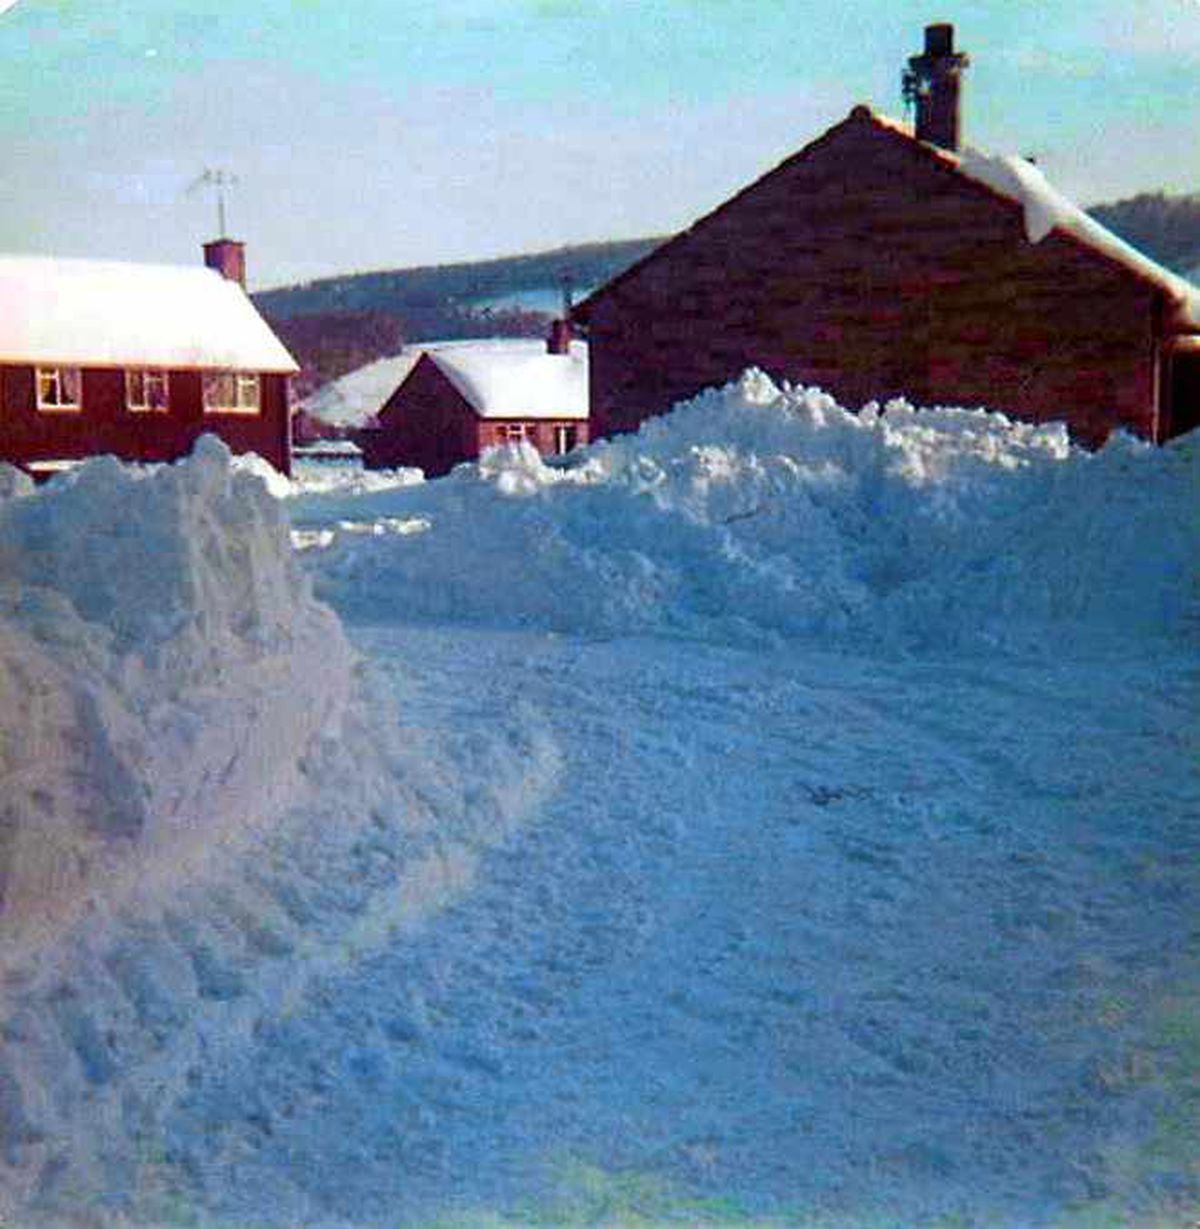 The snow drifts reached well up the side of houses in Clun in January 1982